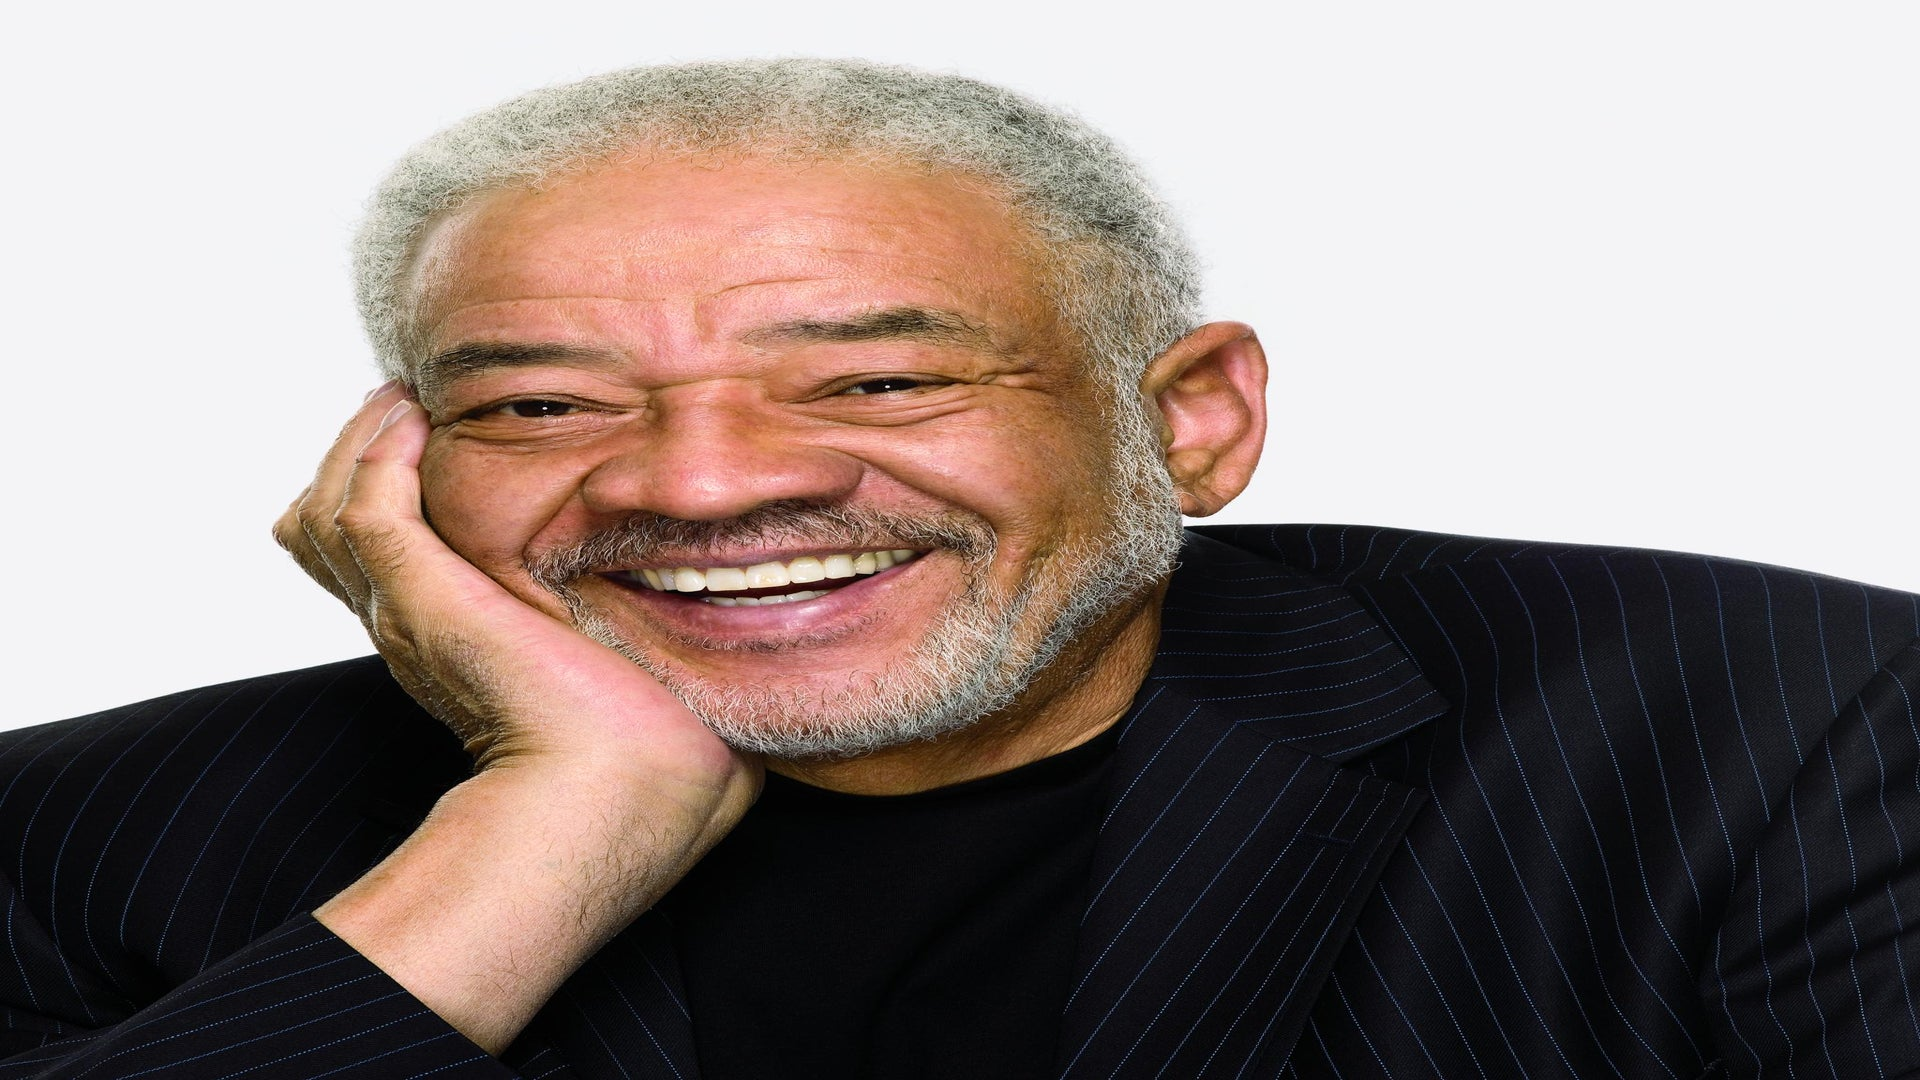 EXCLUSIVE: Bill Withers Looks Back on His Career Before All-Star Tribute At Carnegie Hall